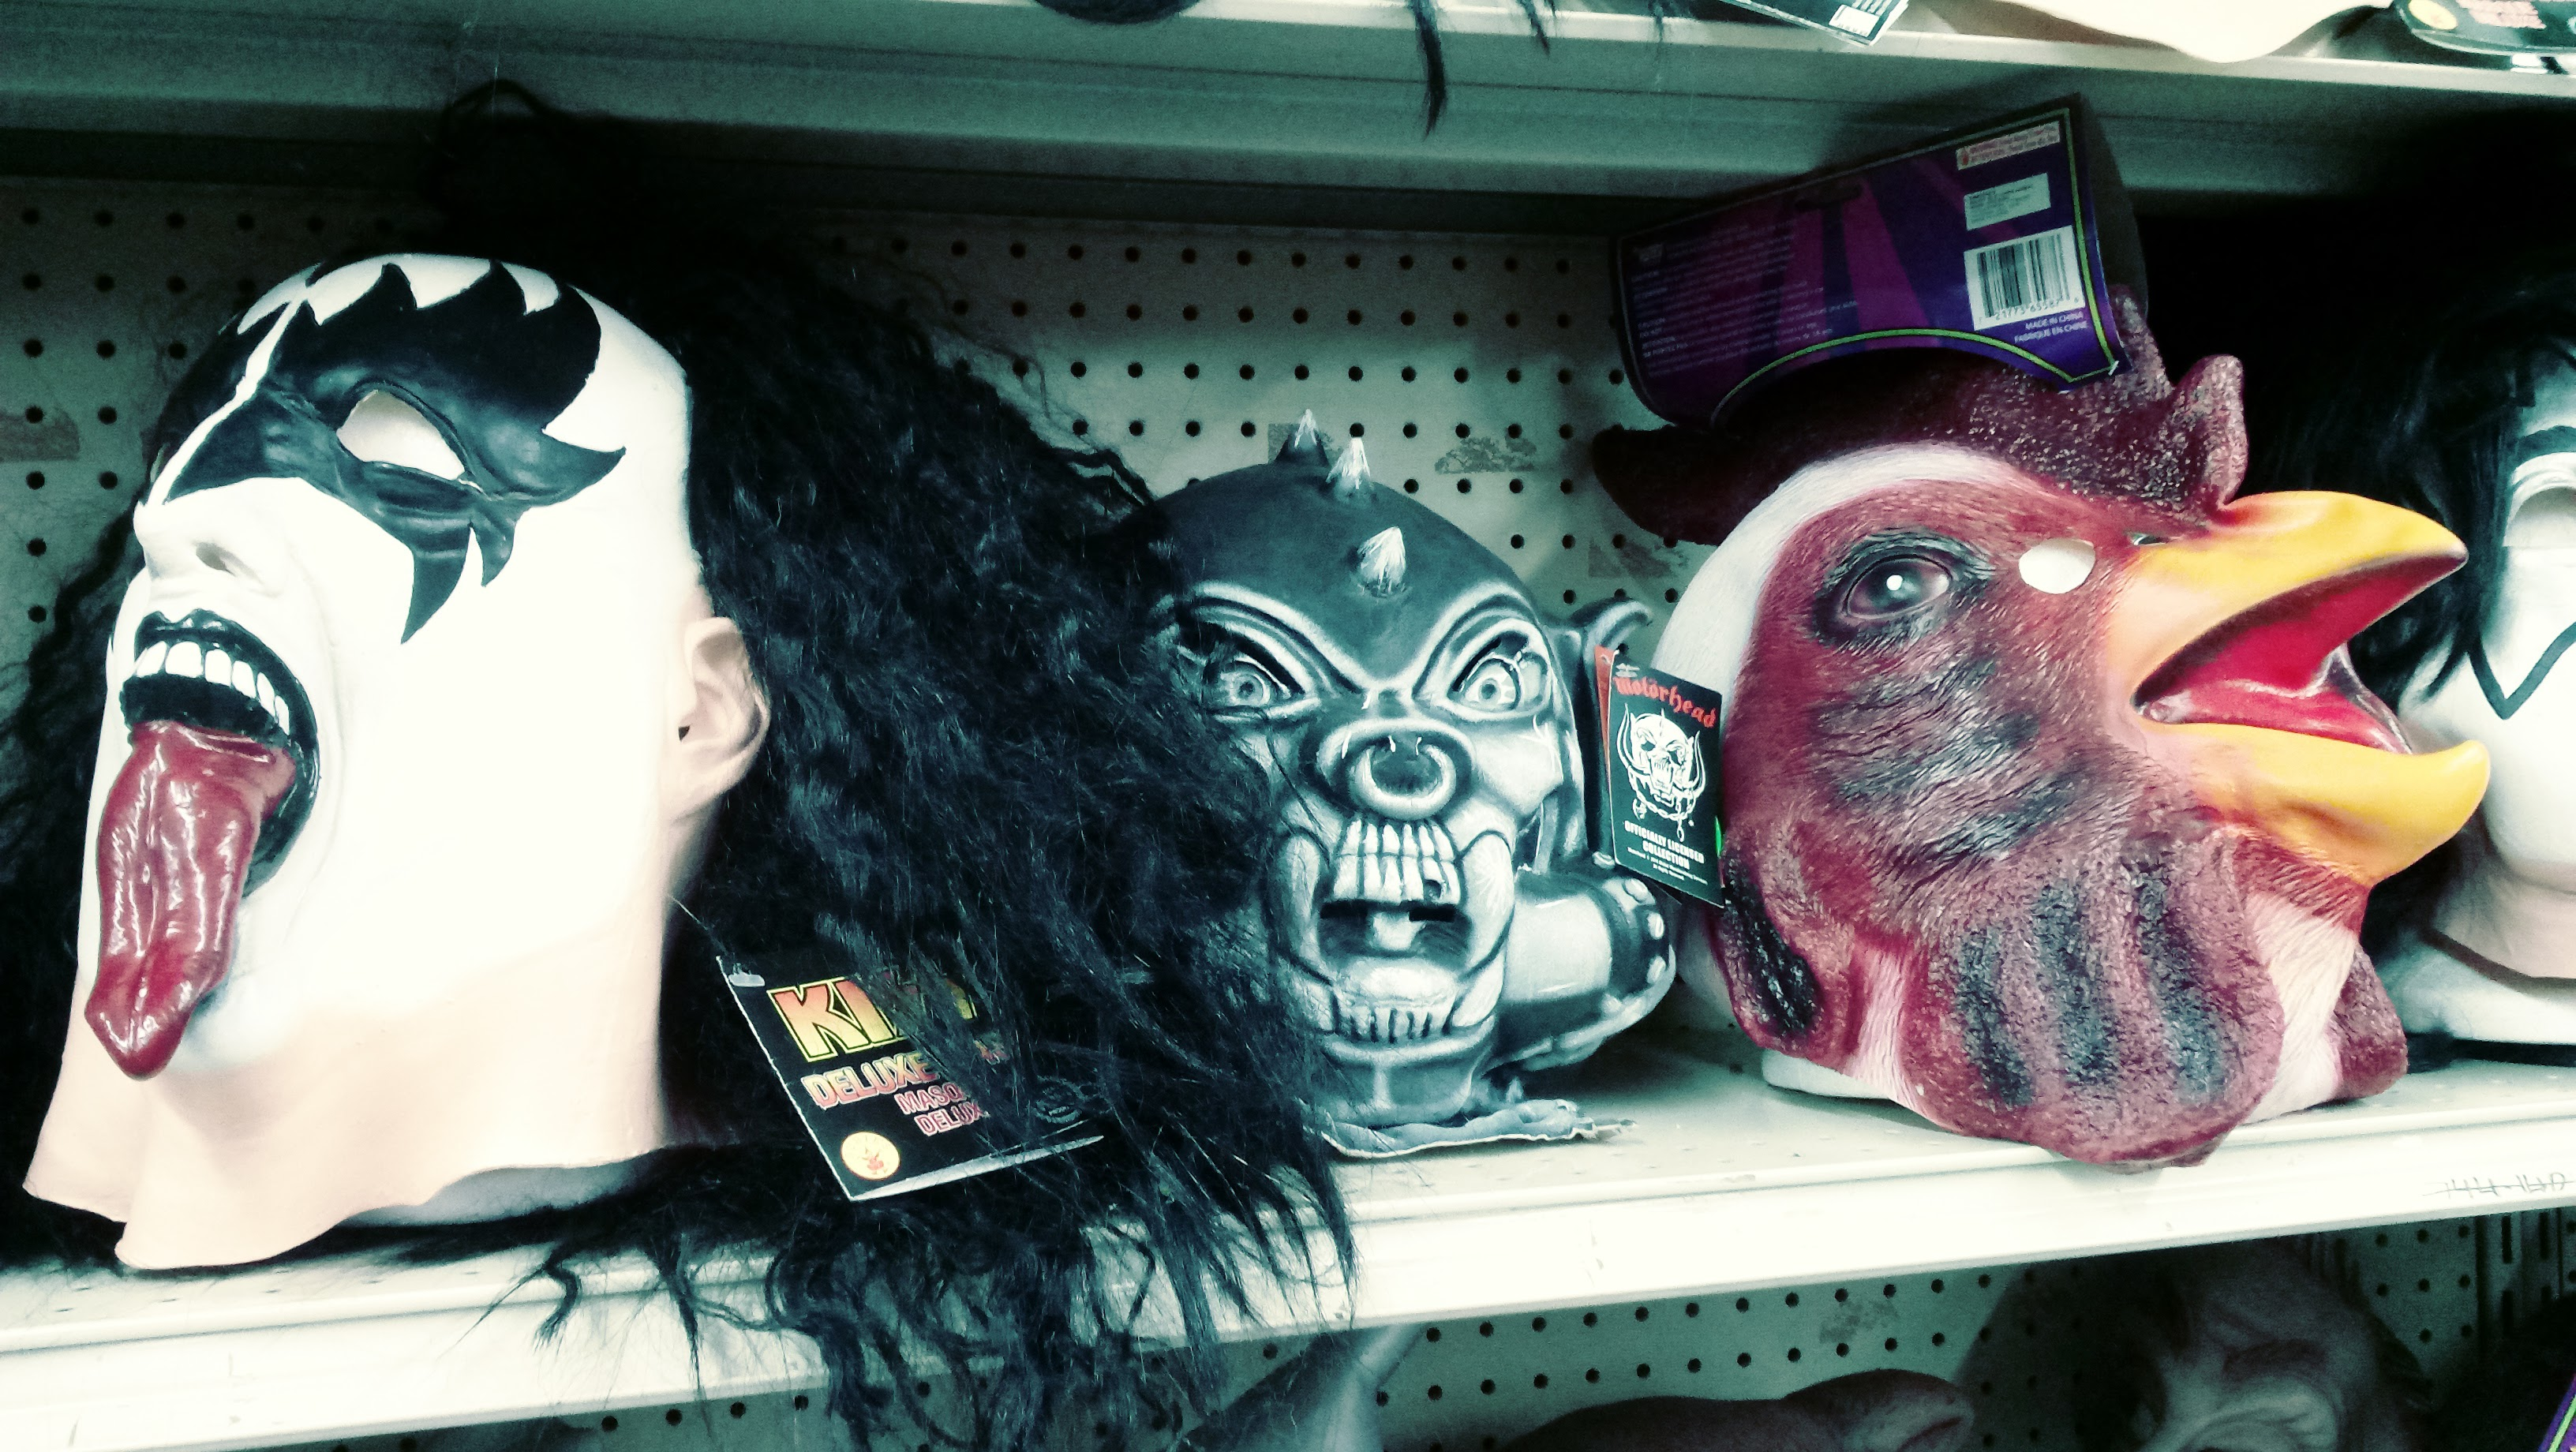 nick nackery gene simmons and motorhead and rooster masks